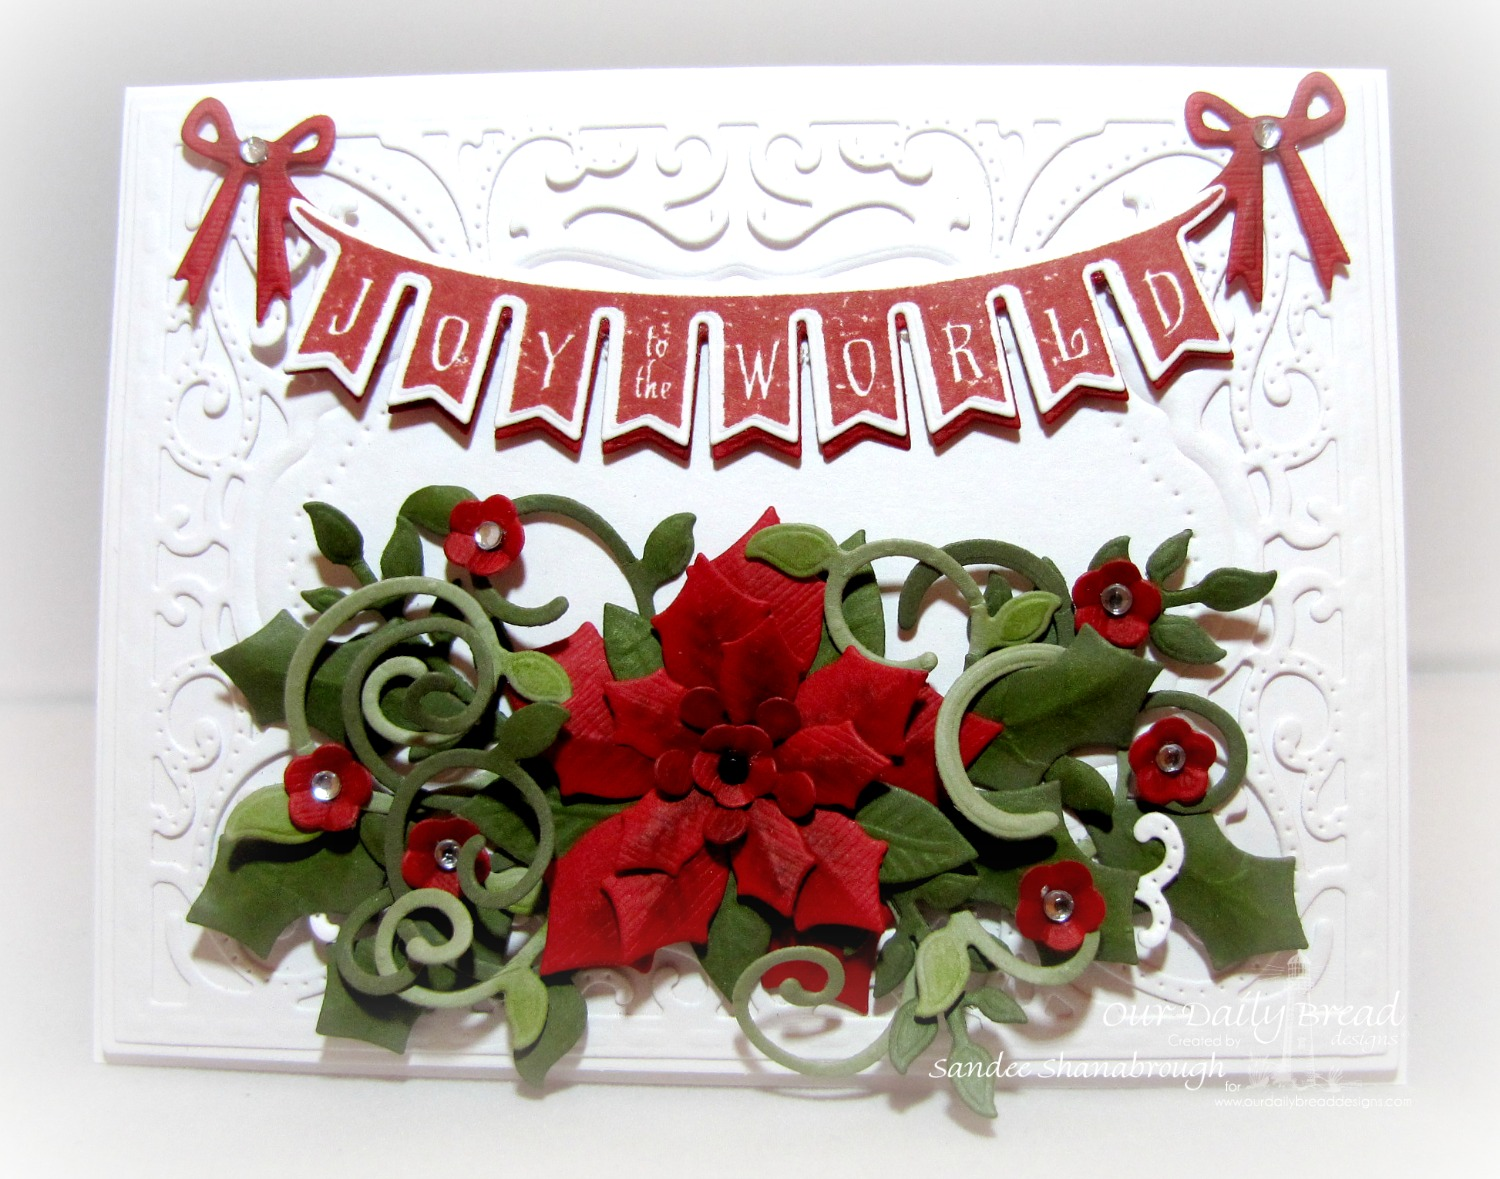 Stamps - Our Daily Bread Designs Christmas Pennant Swag, ODBD Custom Peaceful Poinsettias Dies, ODBD Custom Fancy Foliage Die, ODBD Custom Pennant Swag Die, ODBD Custom Circle Ornaments Die, ODBD Custom Vintage Flourish Pattern Die